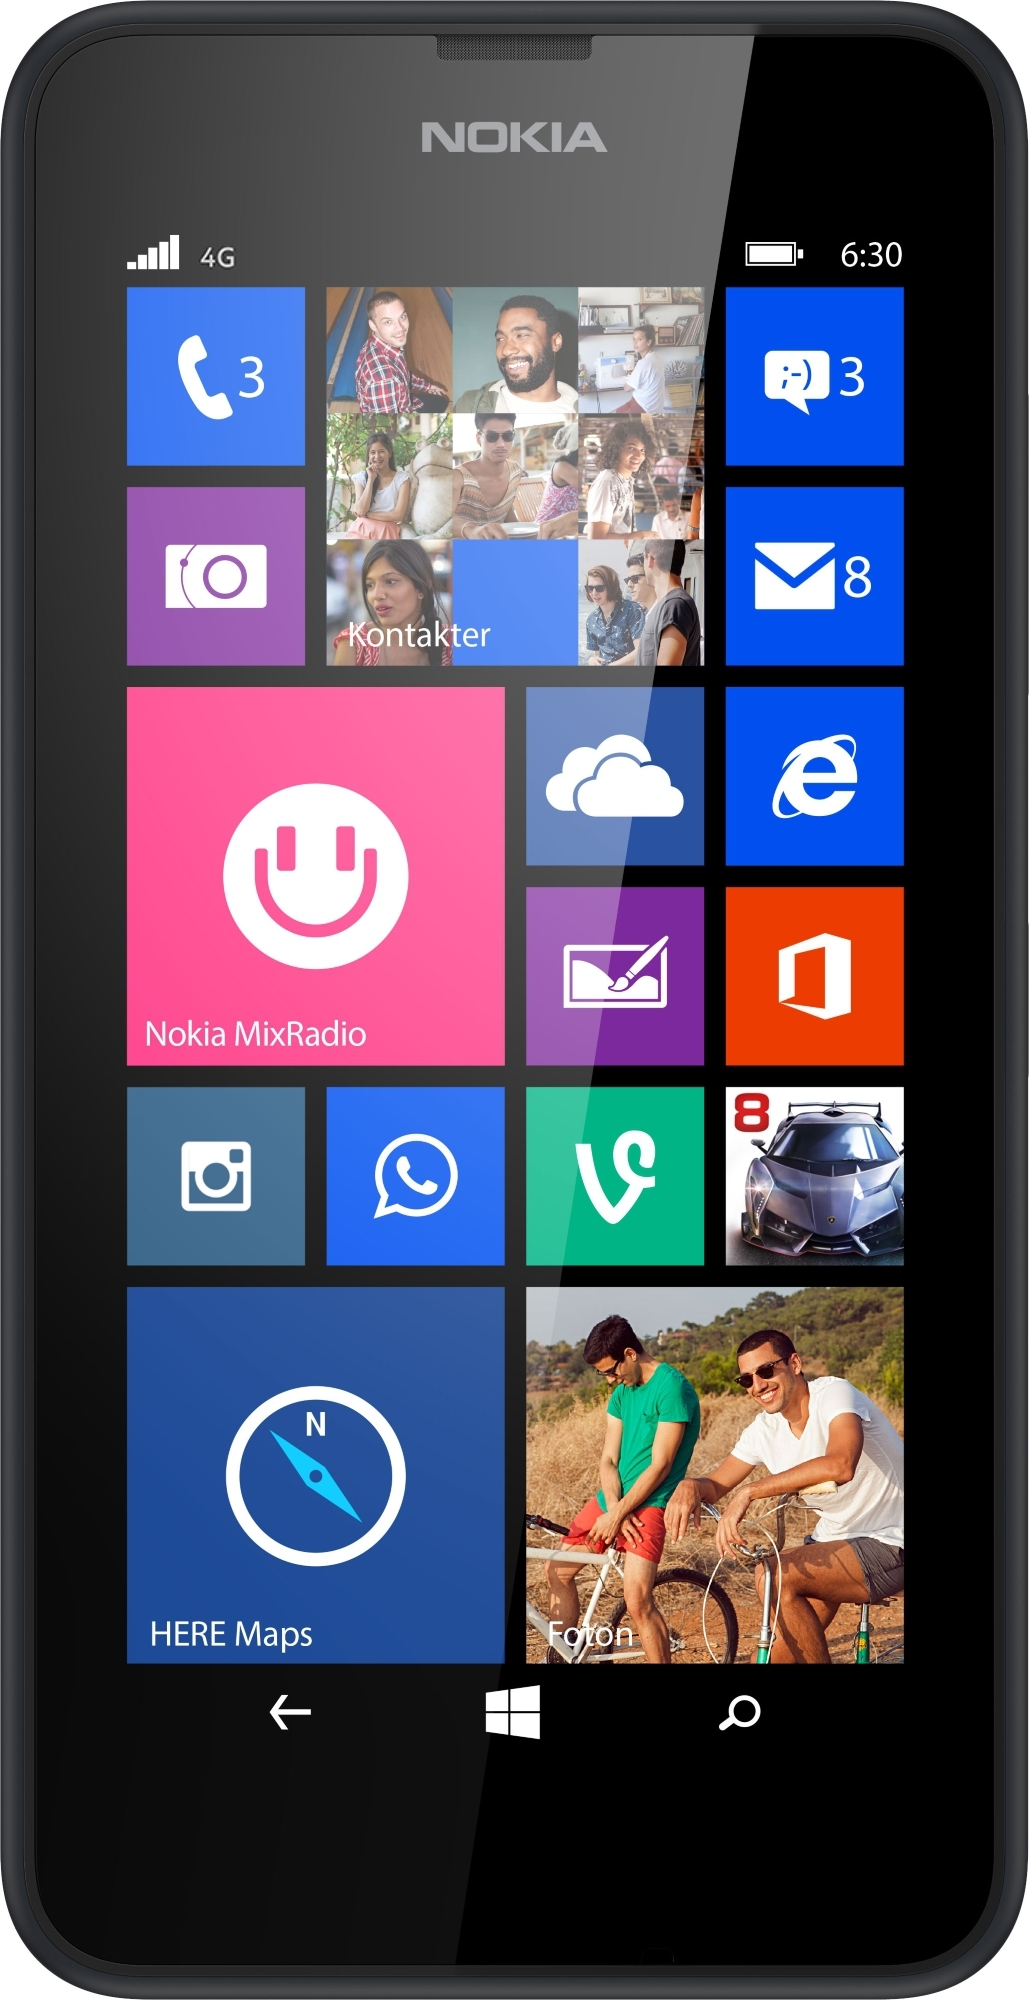 Nokia lumia 635 4g lte black windows 8 smart phone att for Window 4g phone